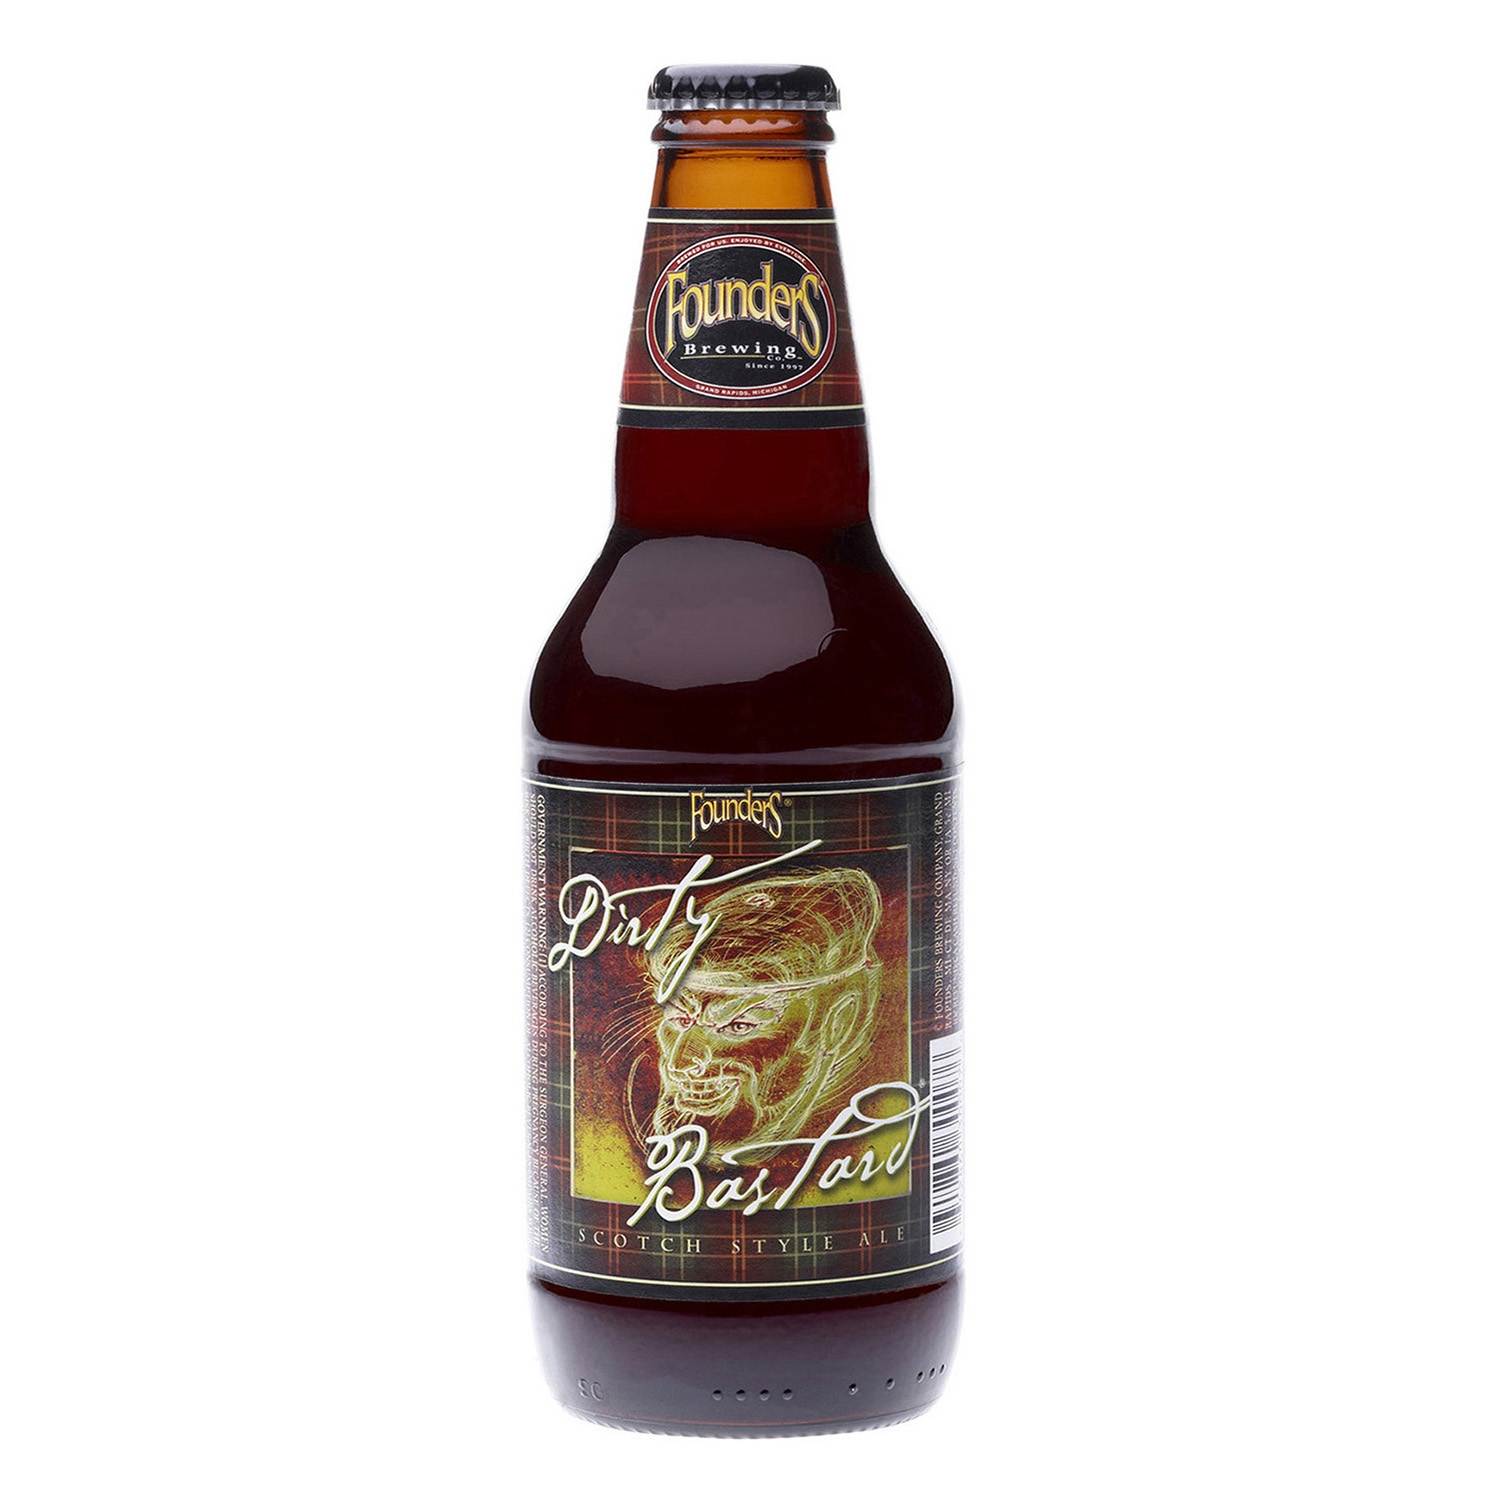 Cerveza artesana Founders Dirty Bastard Scotch Style Ale botella 35,5 cl.